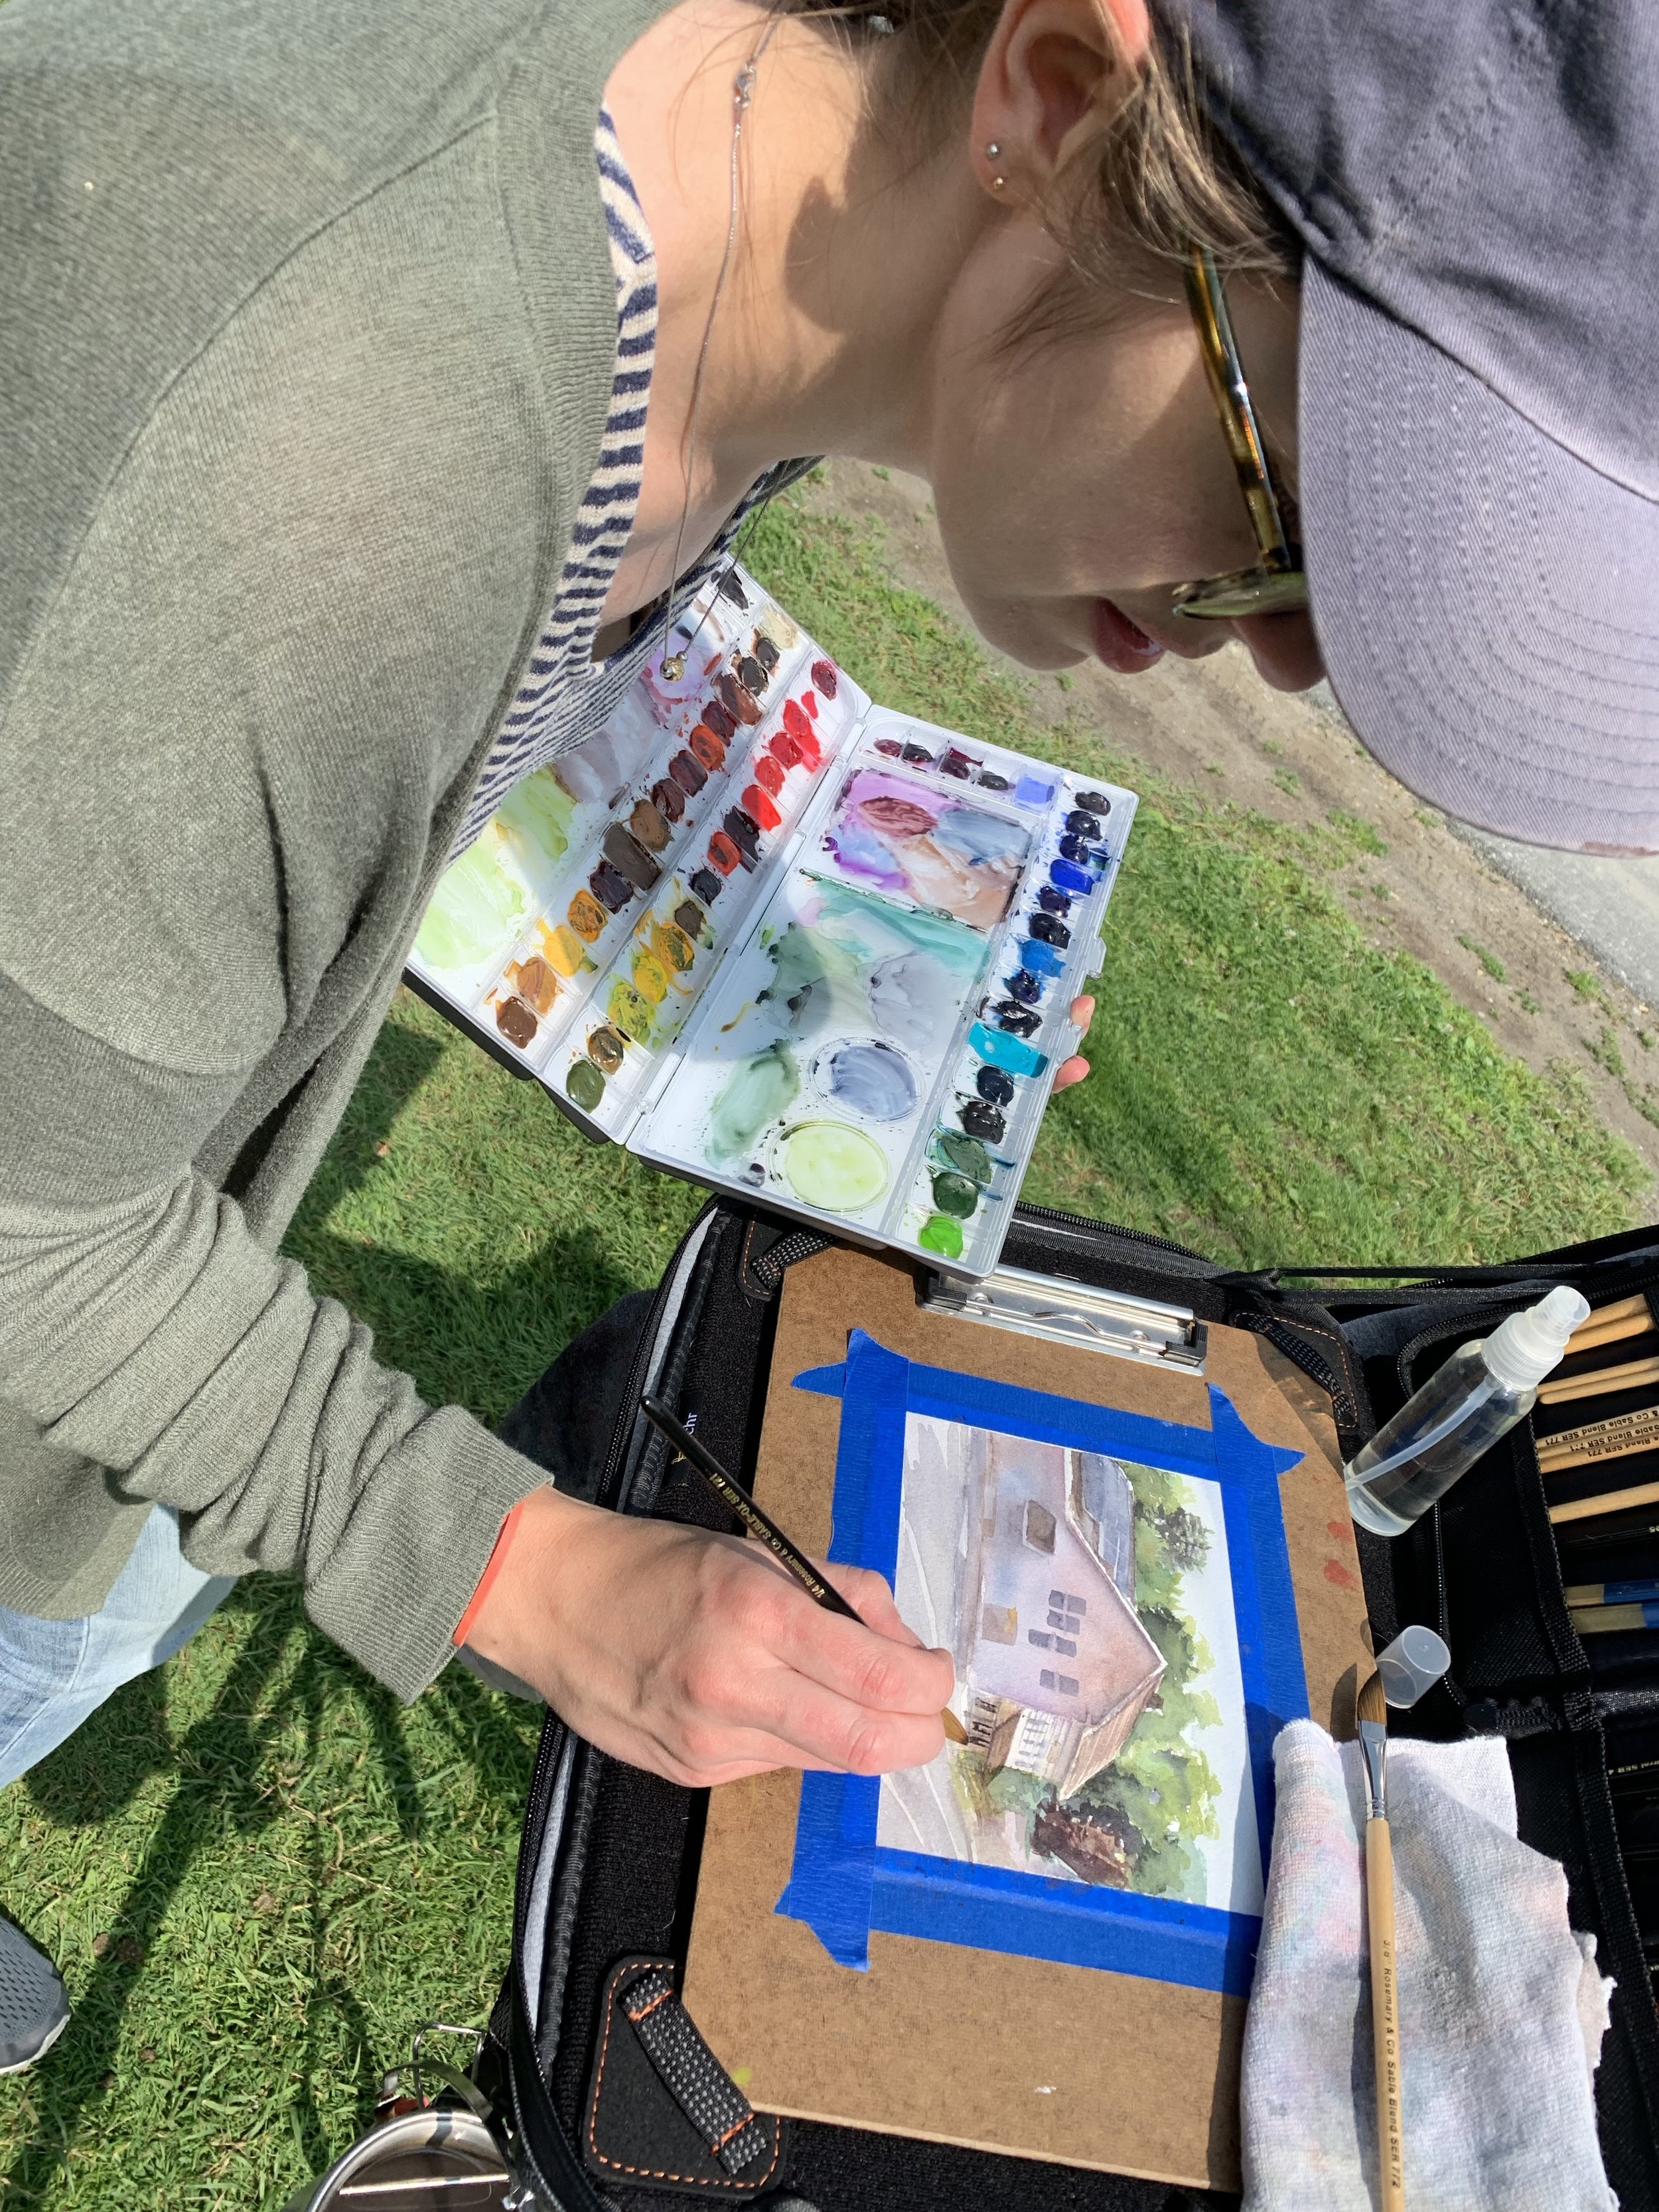 Painting in West Stockbridge as part of the Guild of Berkshire Artists' Creating Art Outdoors program.